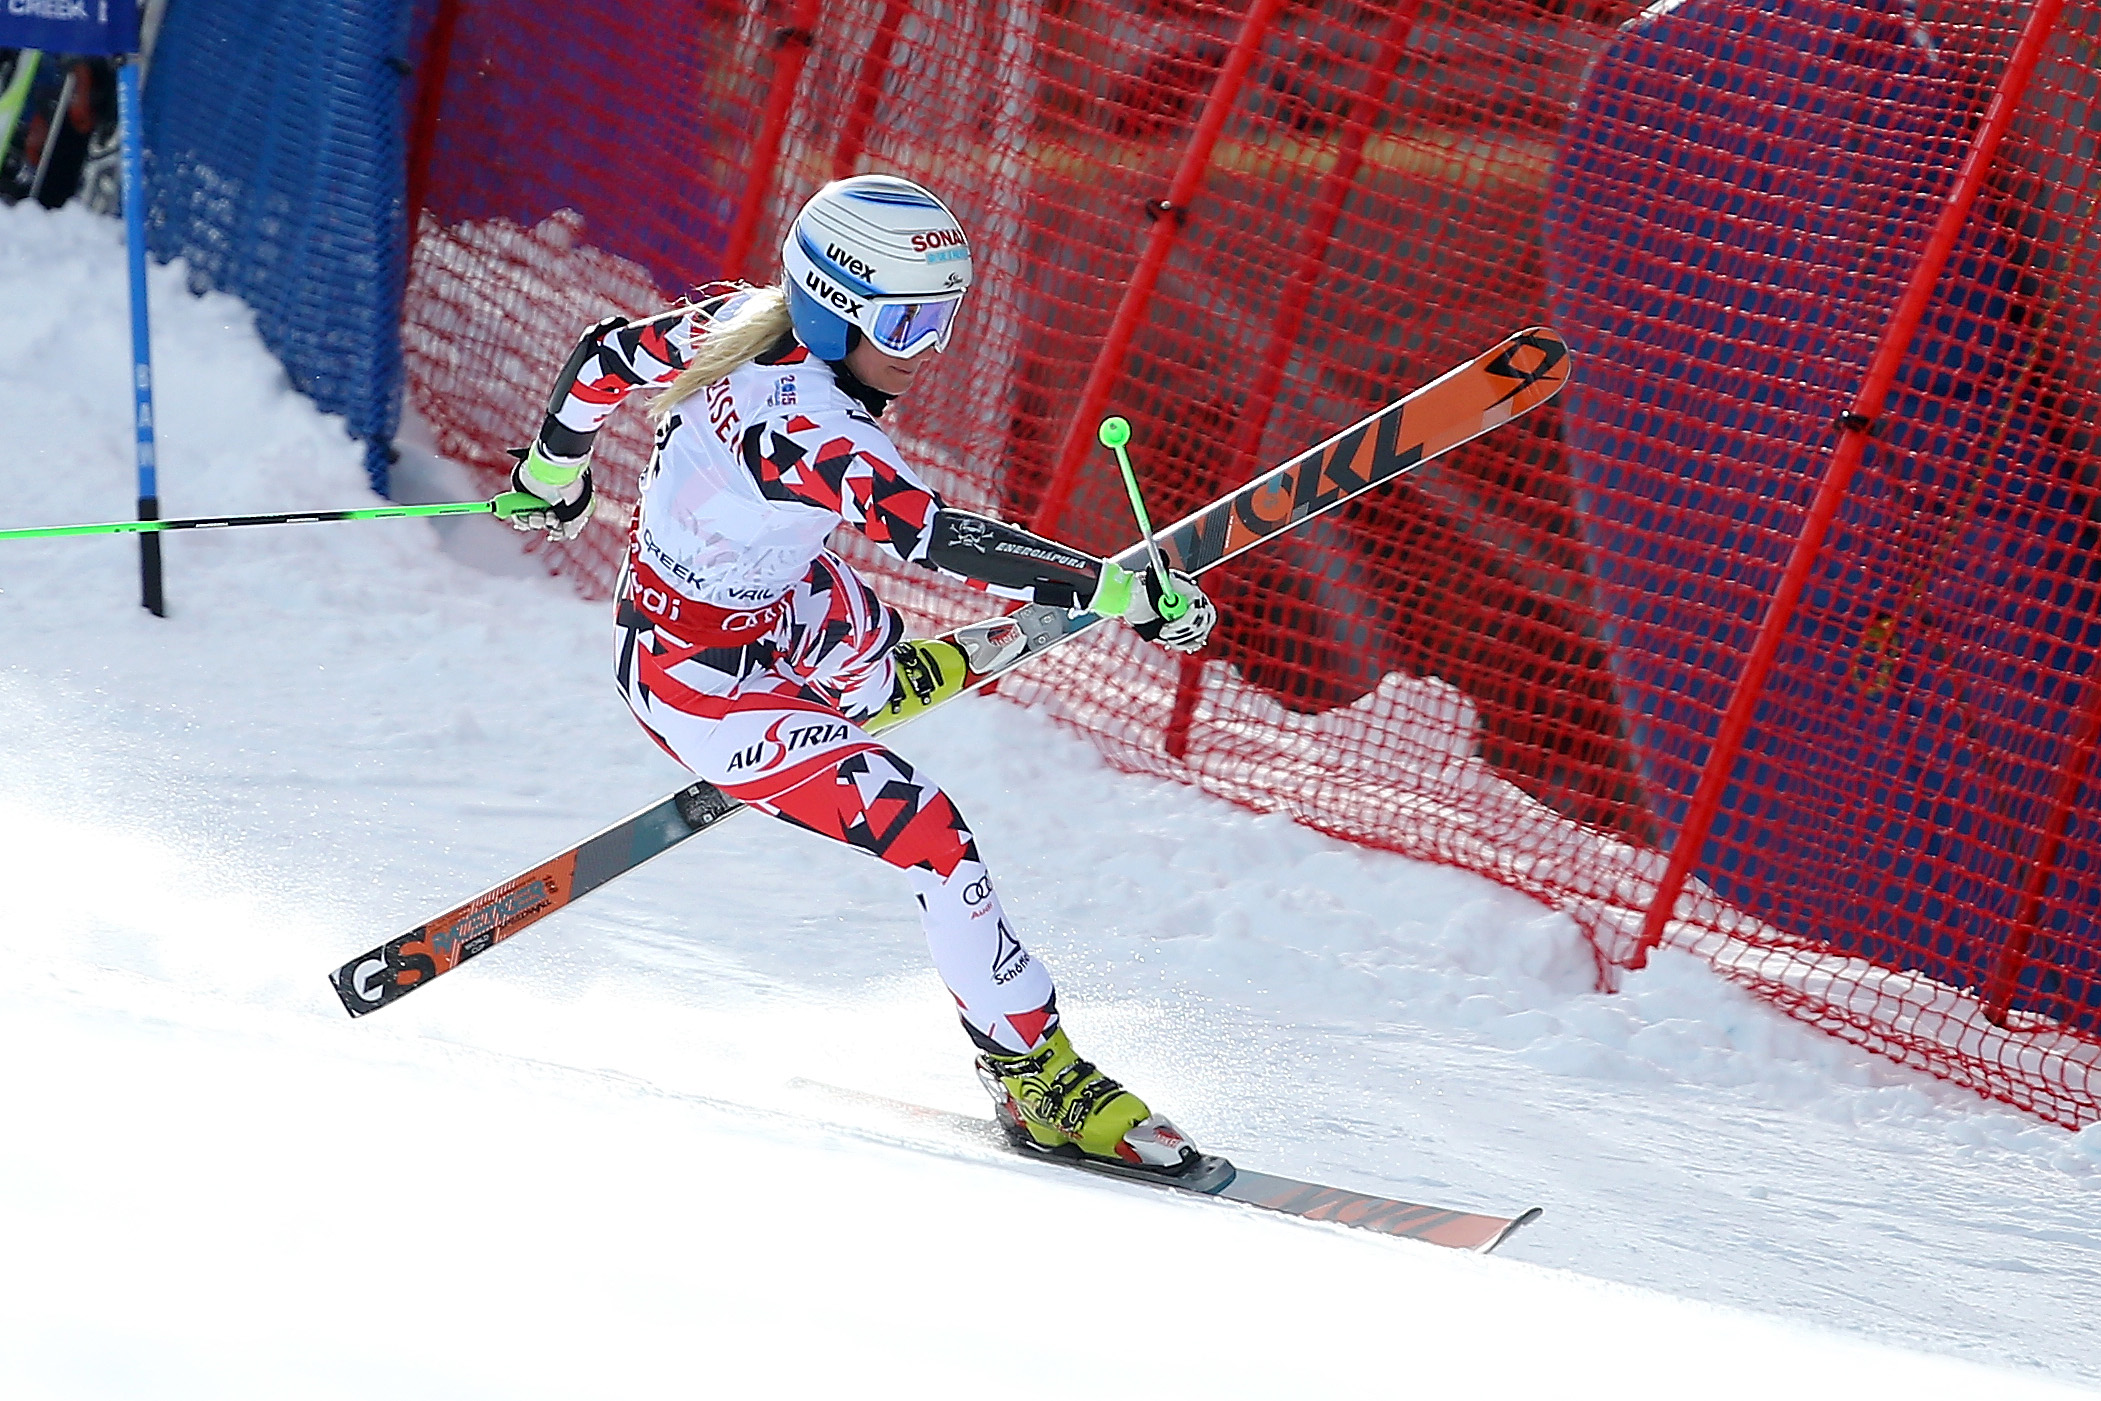 Eva-Maria Brem of Austria loses balance during the Ladies' Giant Slalom on the Raptor racecourse on Day 11 of the 2015 FIS Alpine World Ski Championships on February 12, 2015 in Beaver Creek, Colorado. (Photo by Al Bello/Getty Images)